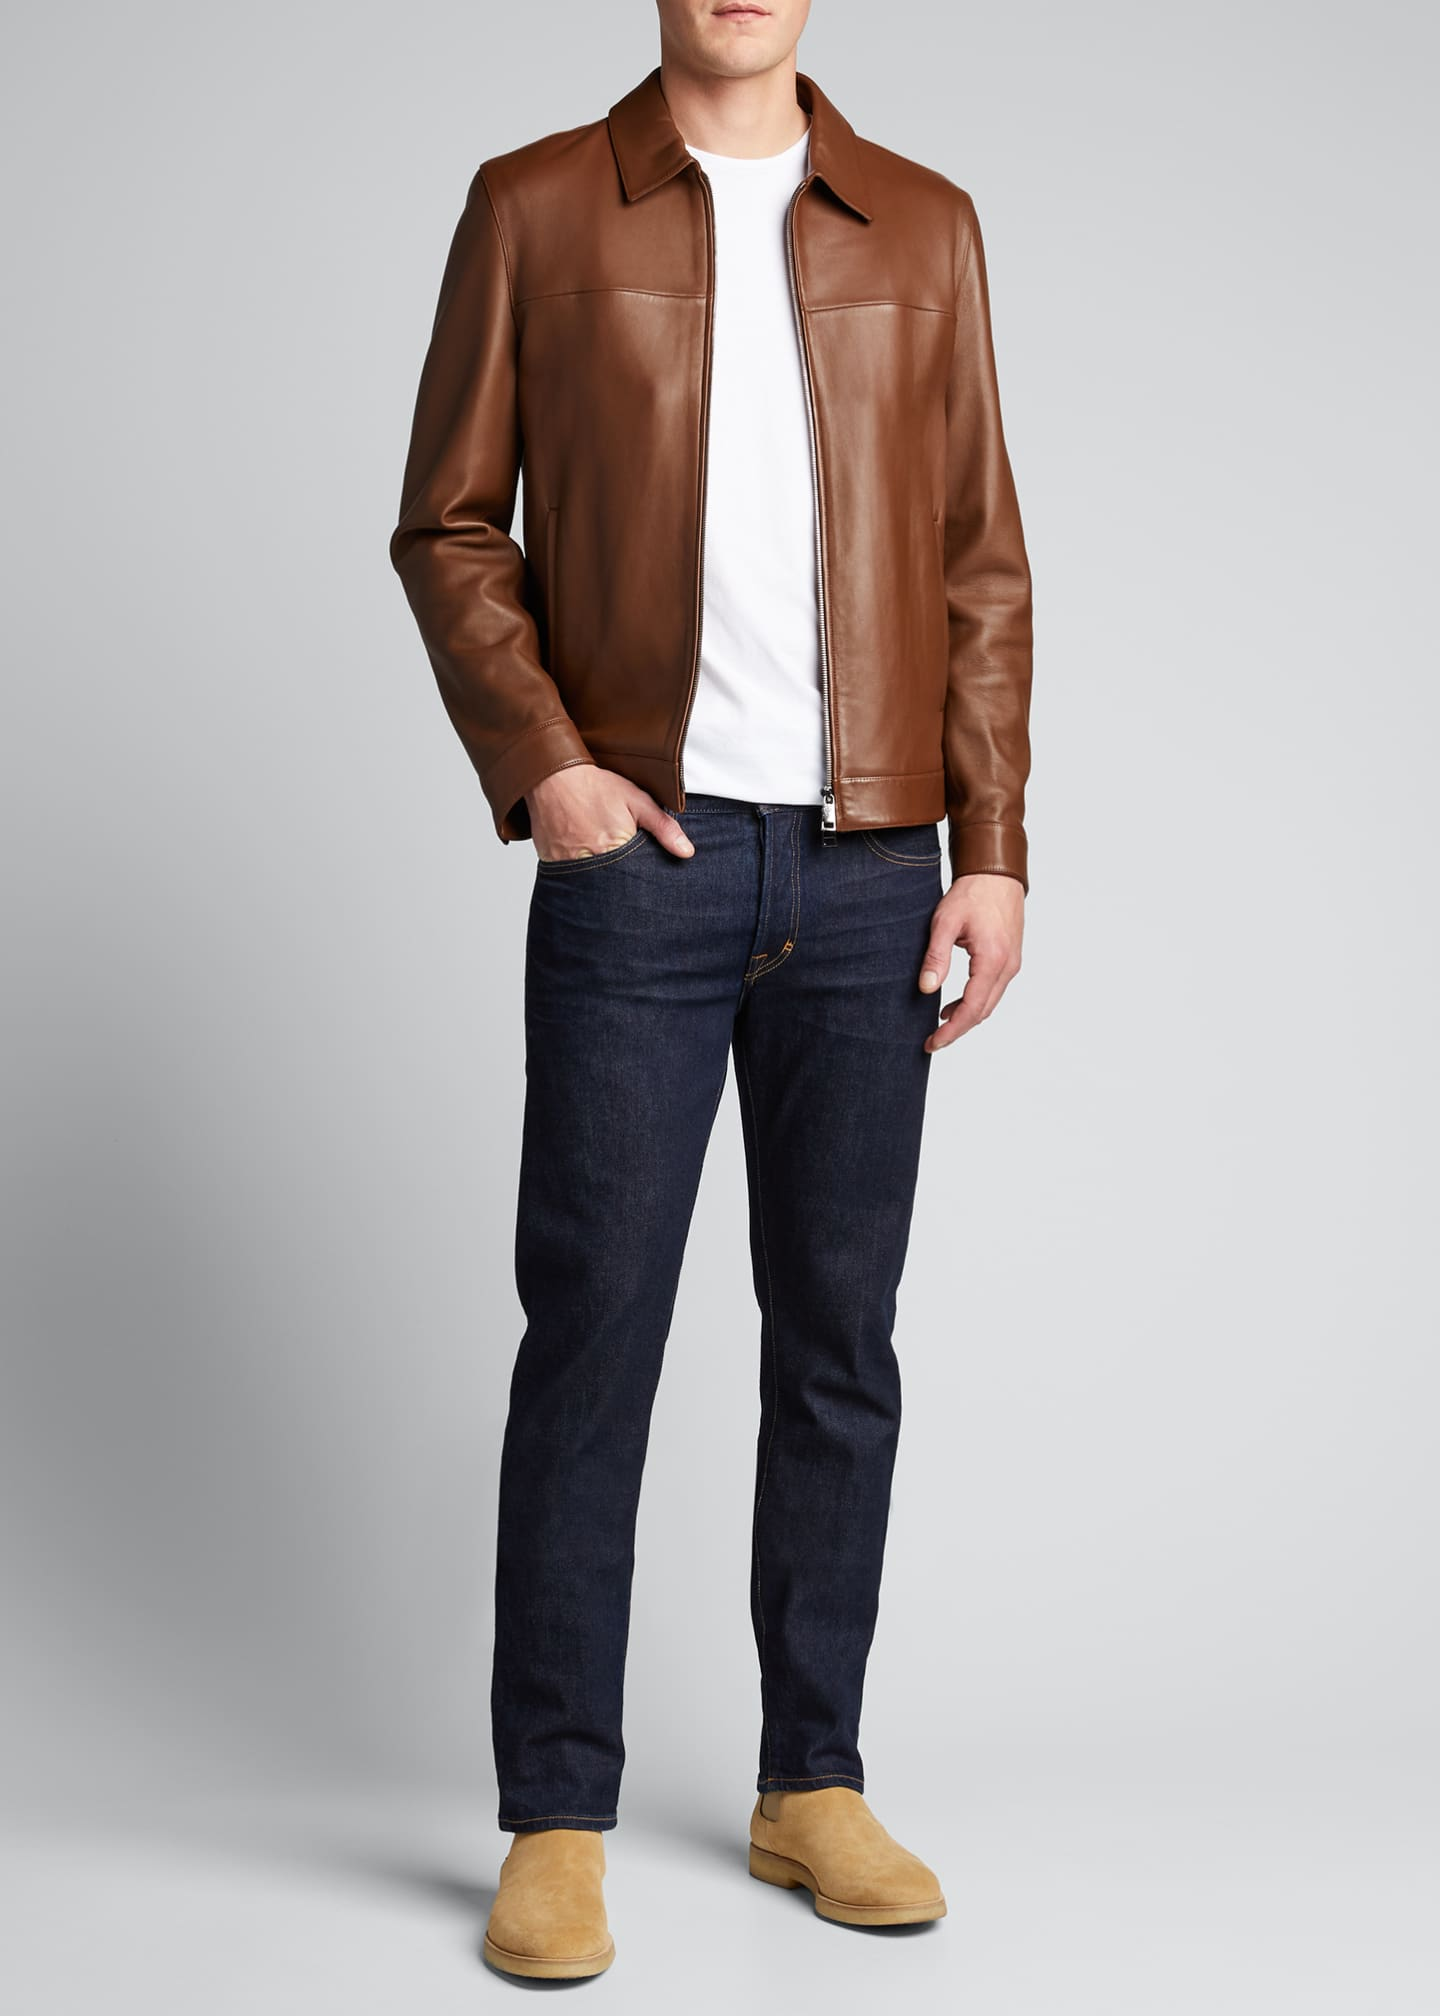 Image 1 of 4: Men's Roscoe Plover Leather Jacket